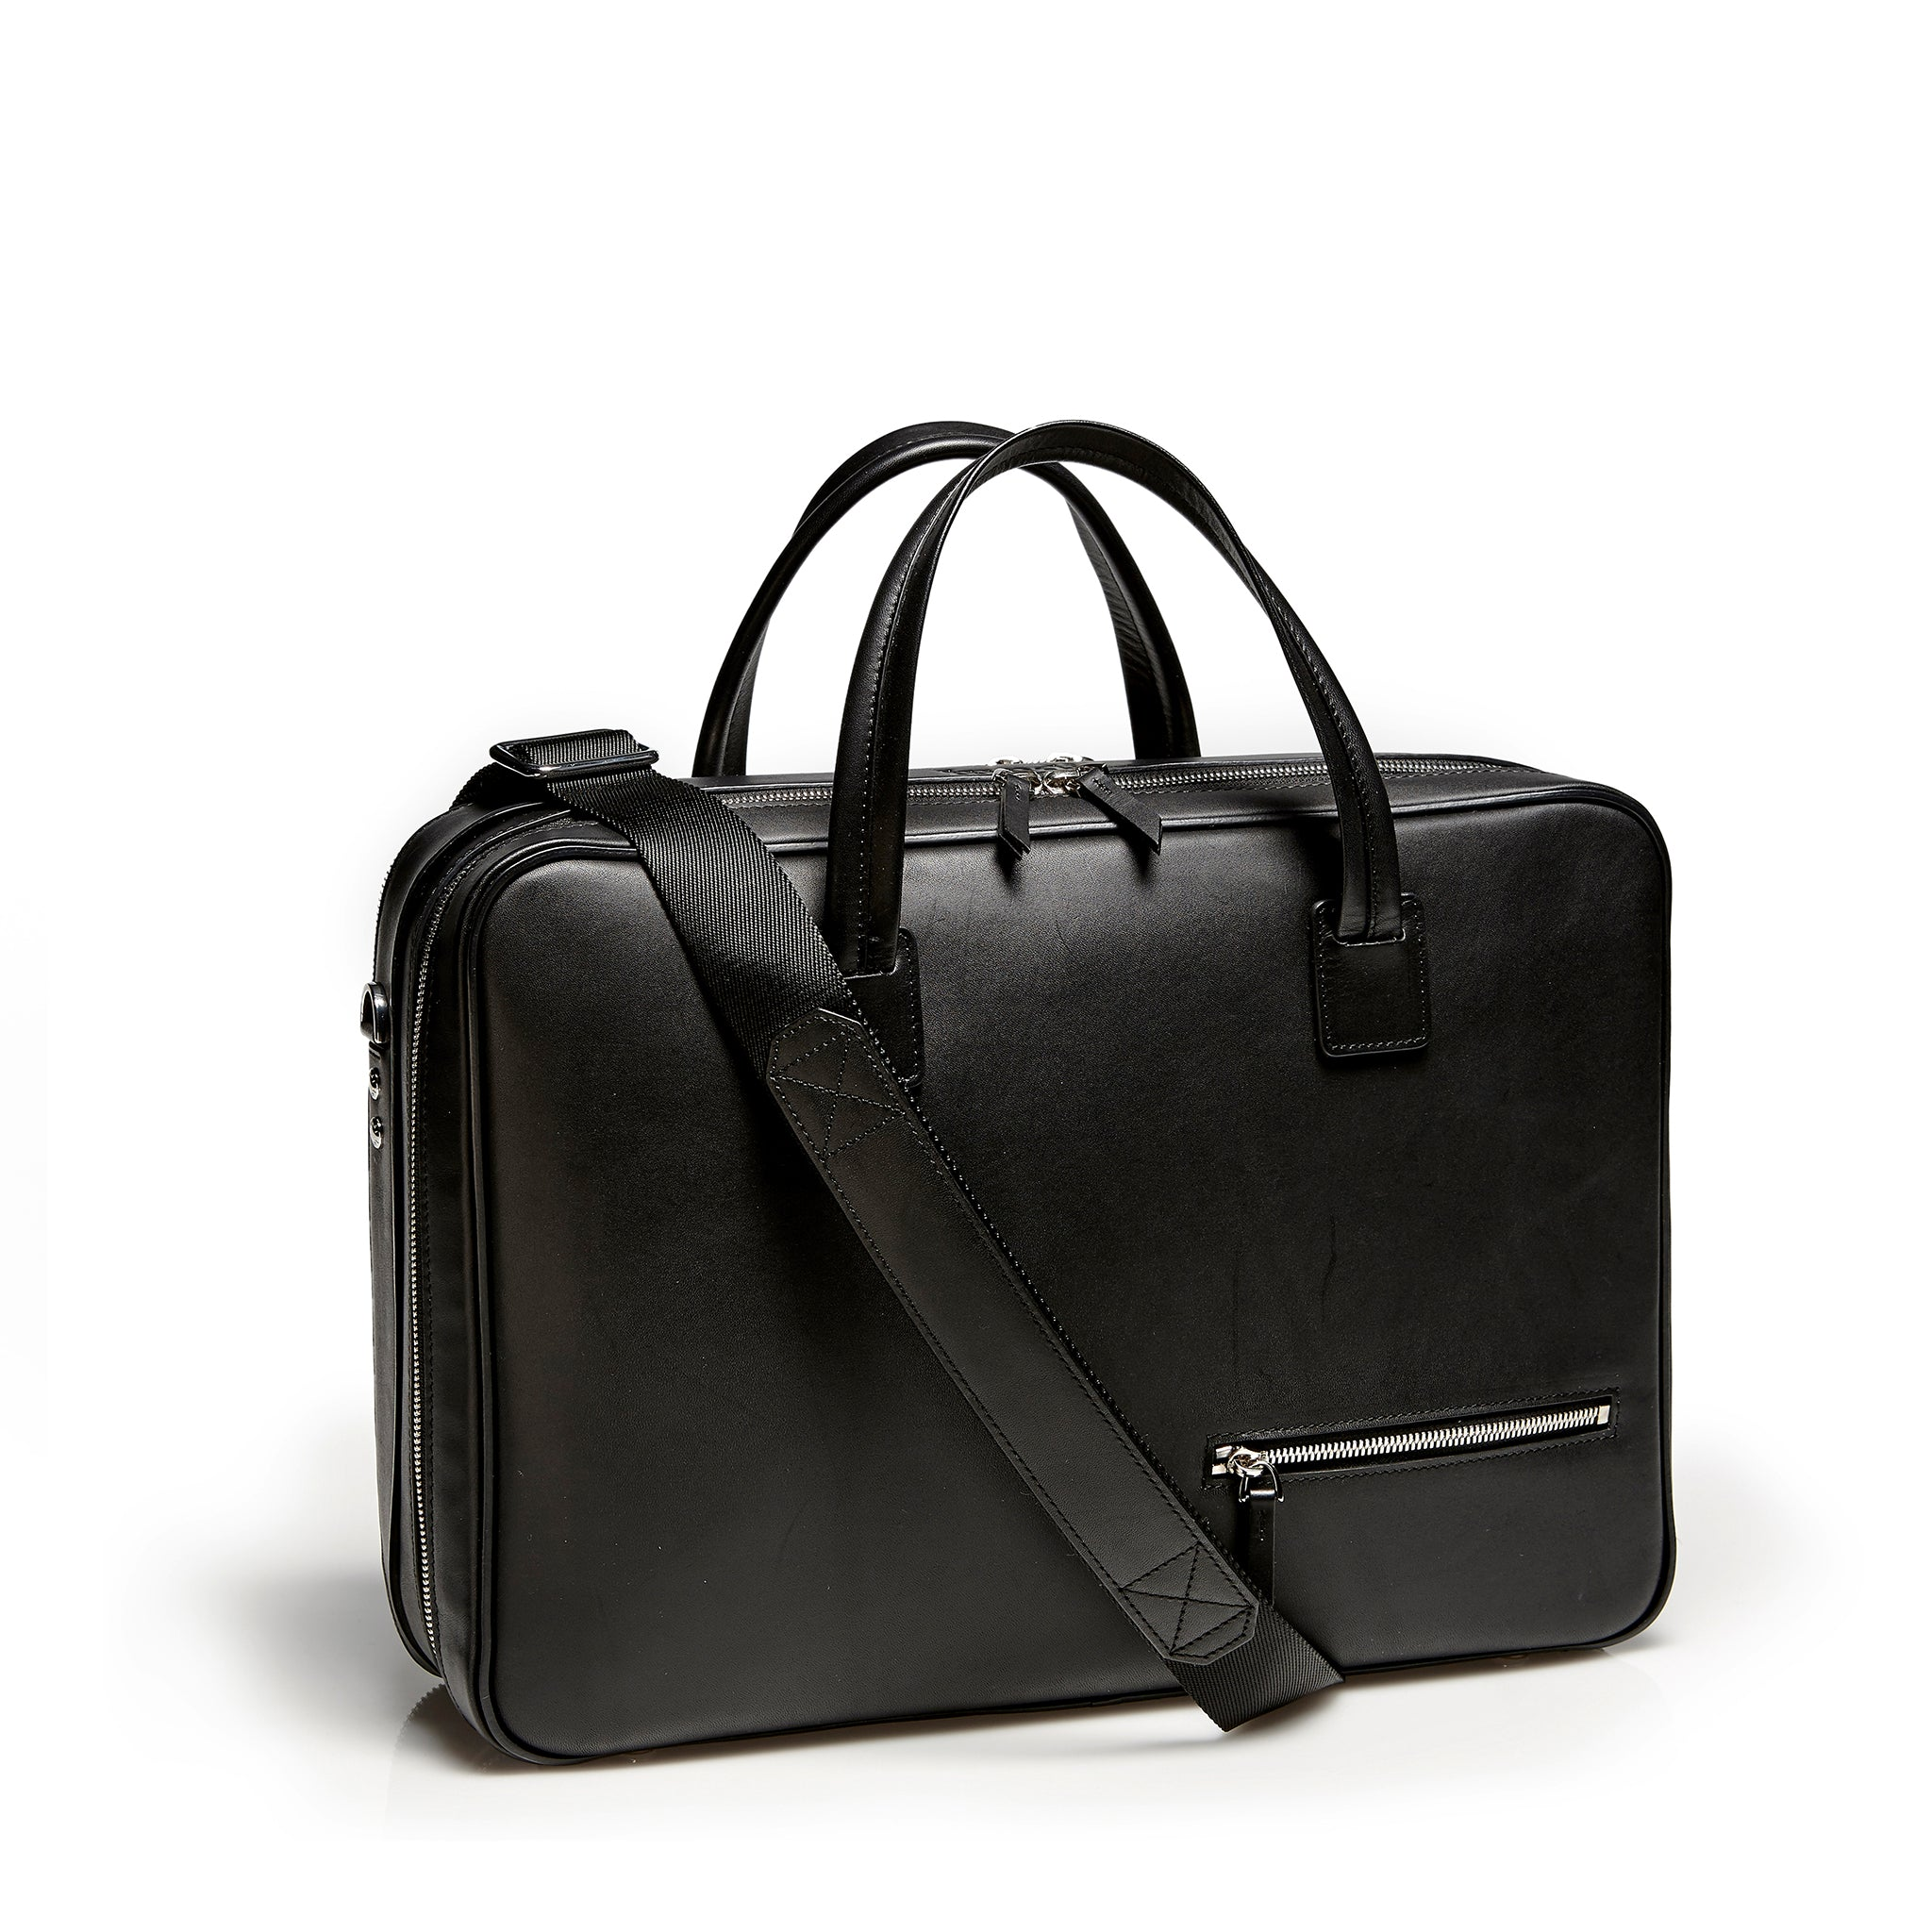 lundi 36-hour travel bag | BELLECOURT black